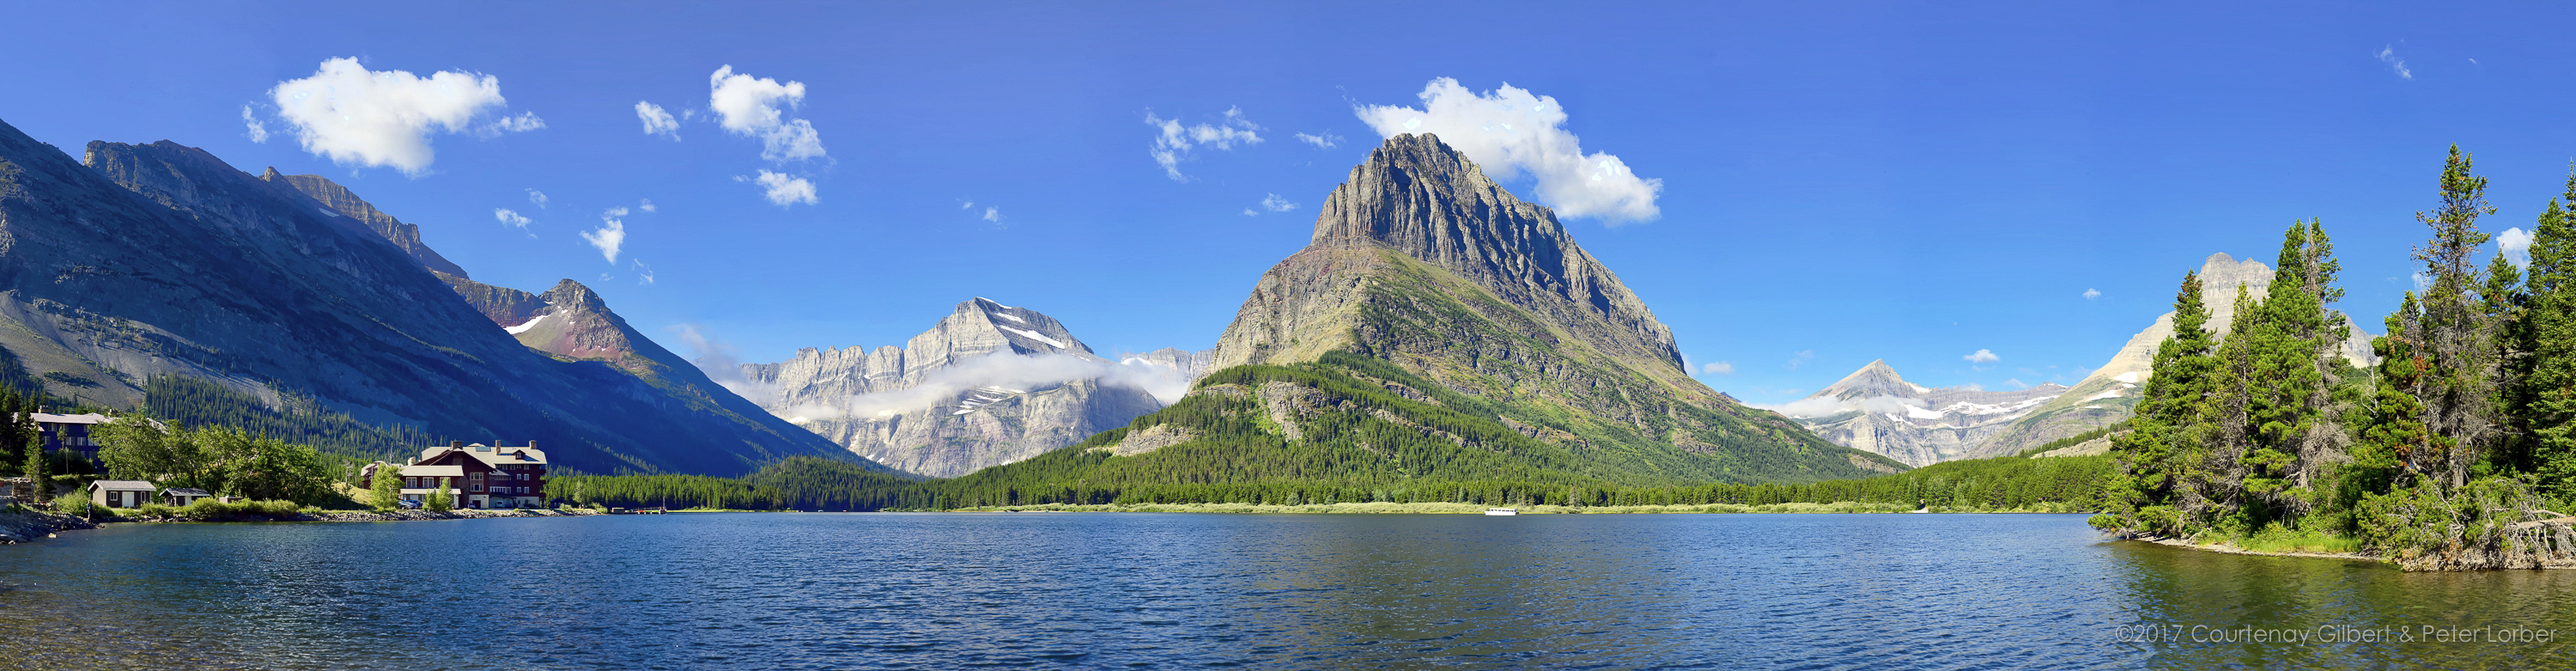 Swiftcurrent Lake Morning-2